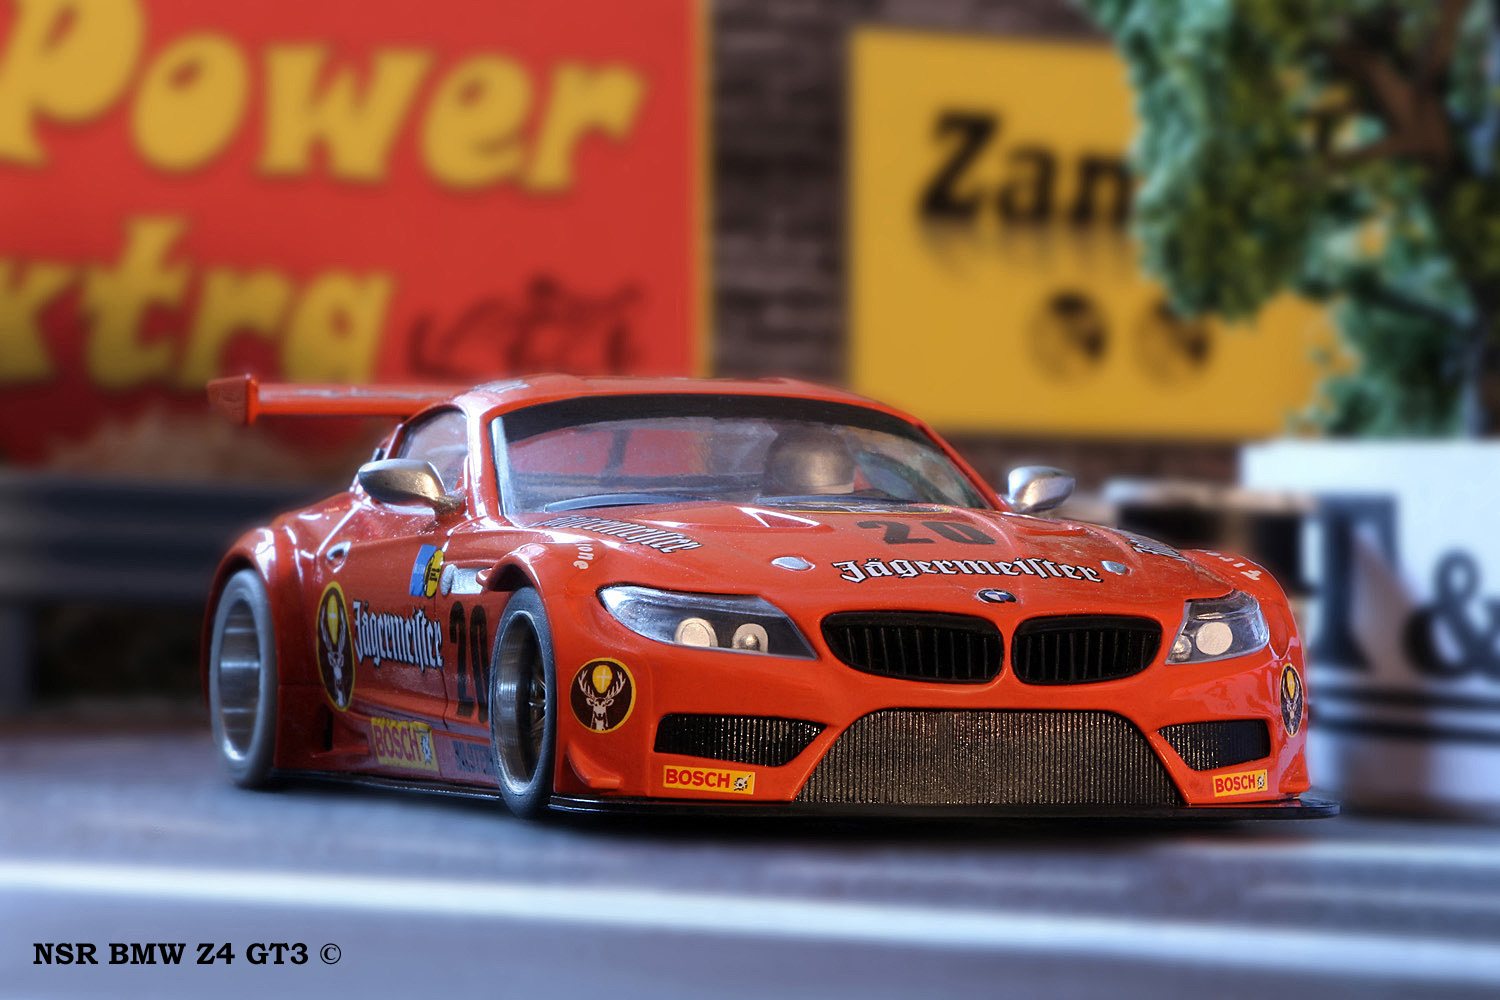 Nsr slot cars homepage counting big numbers